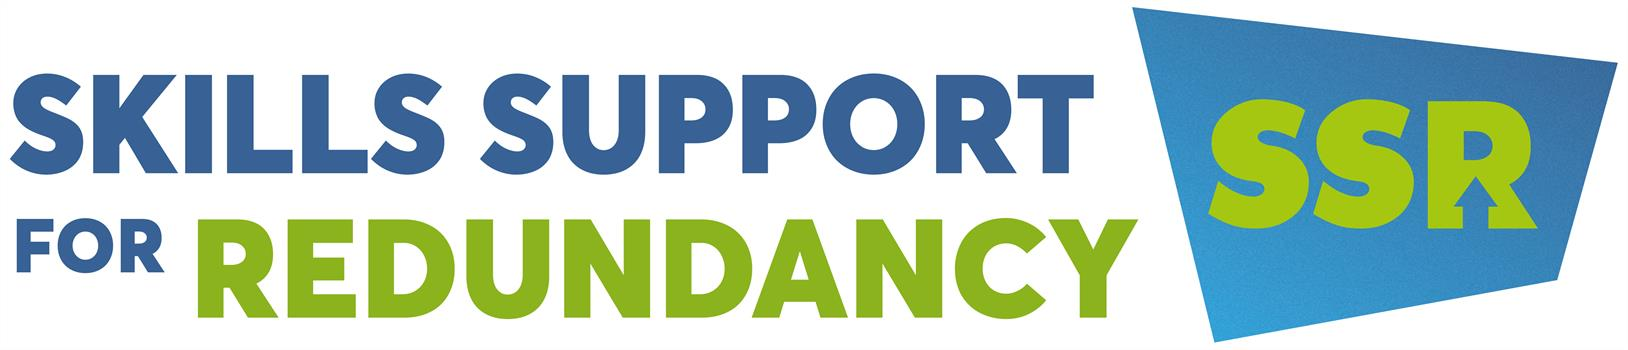 Skills Support for Redundancy programme logo